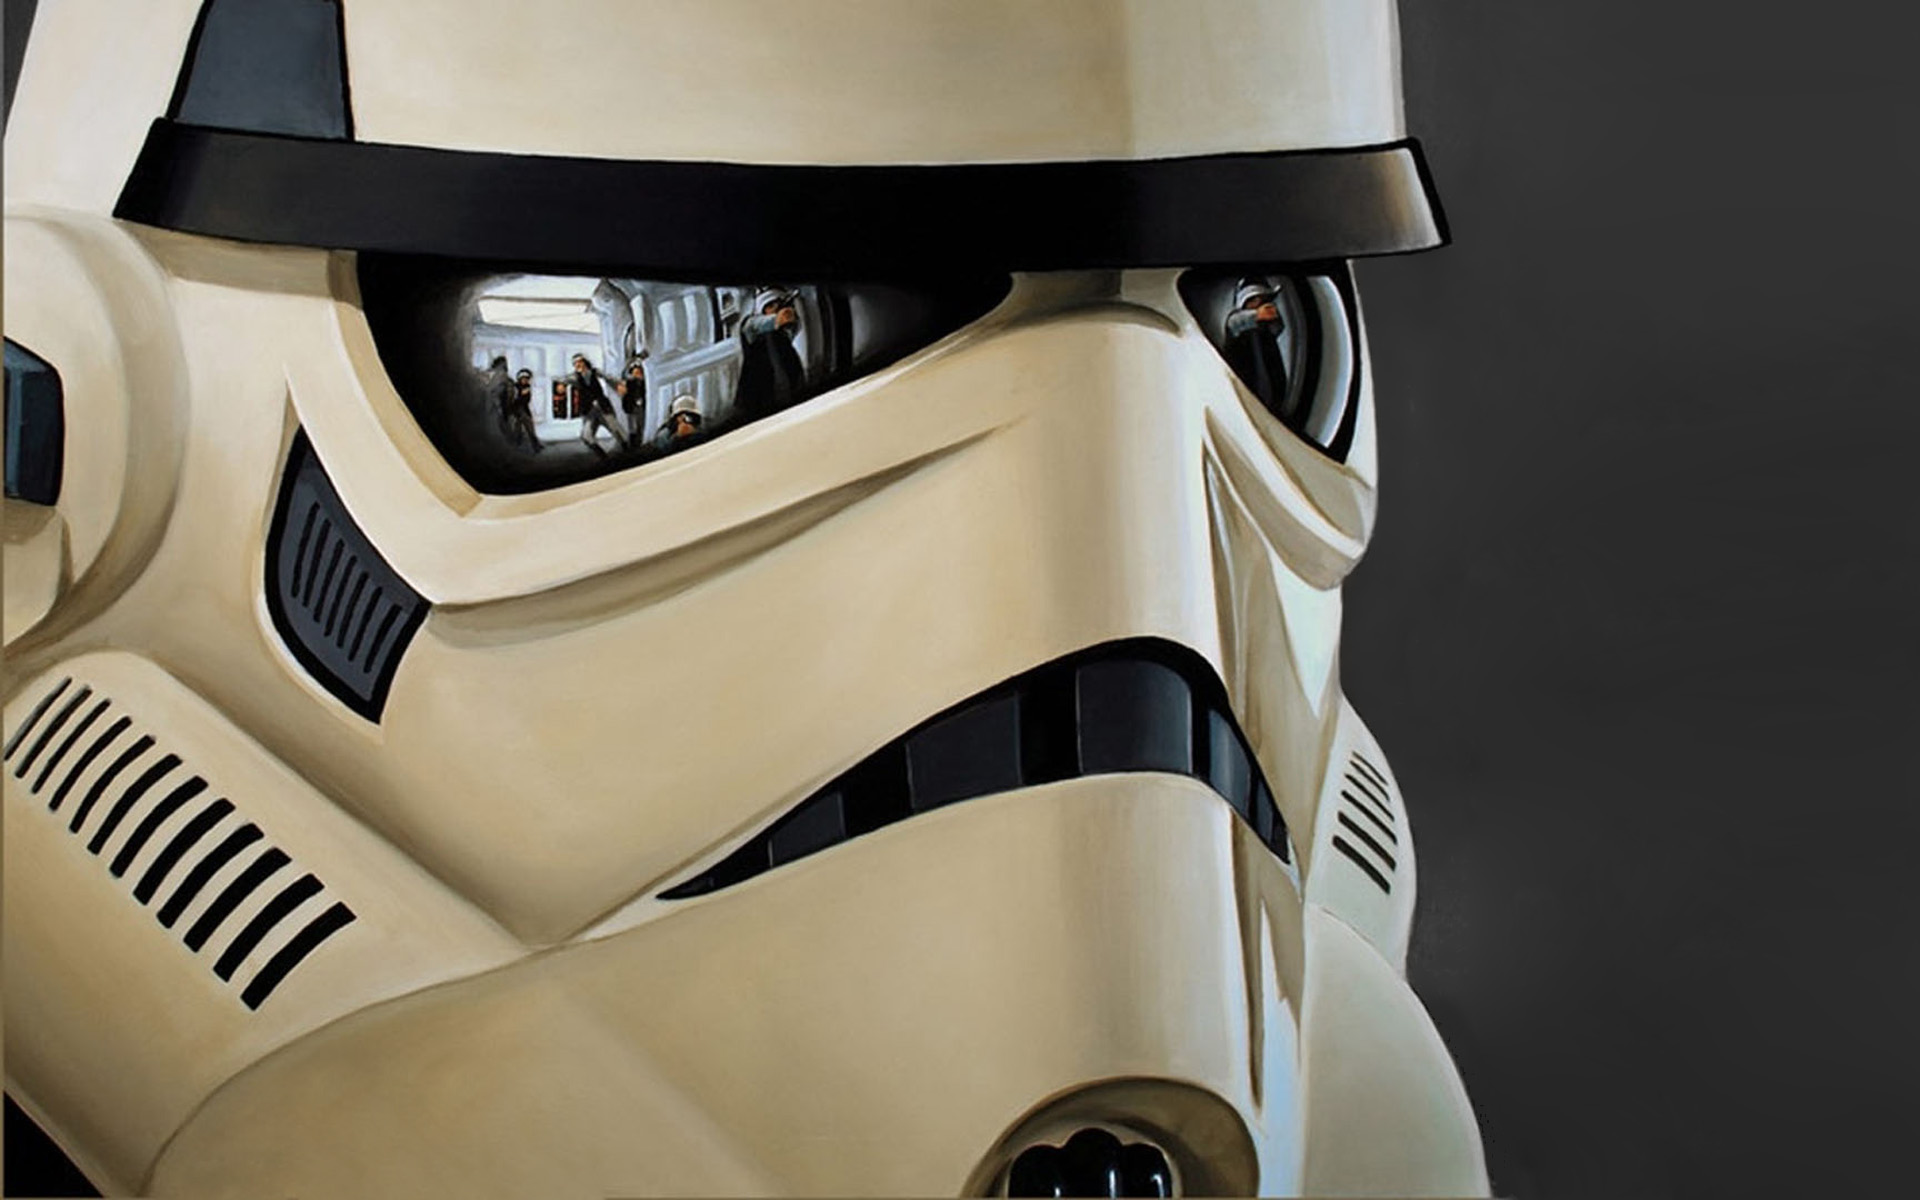 star wars stormtrooper helmet wallpapers | star wars stormtrooper